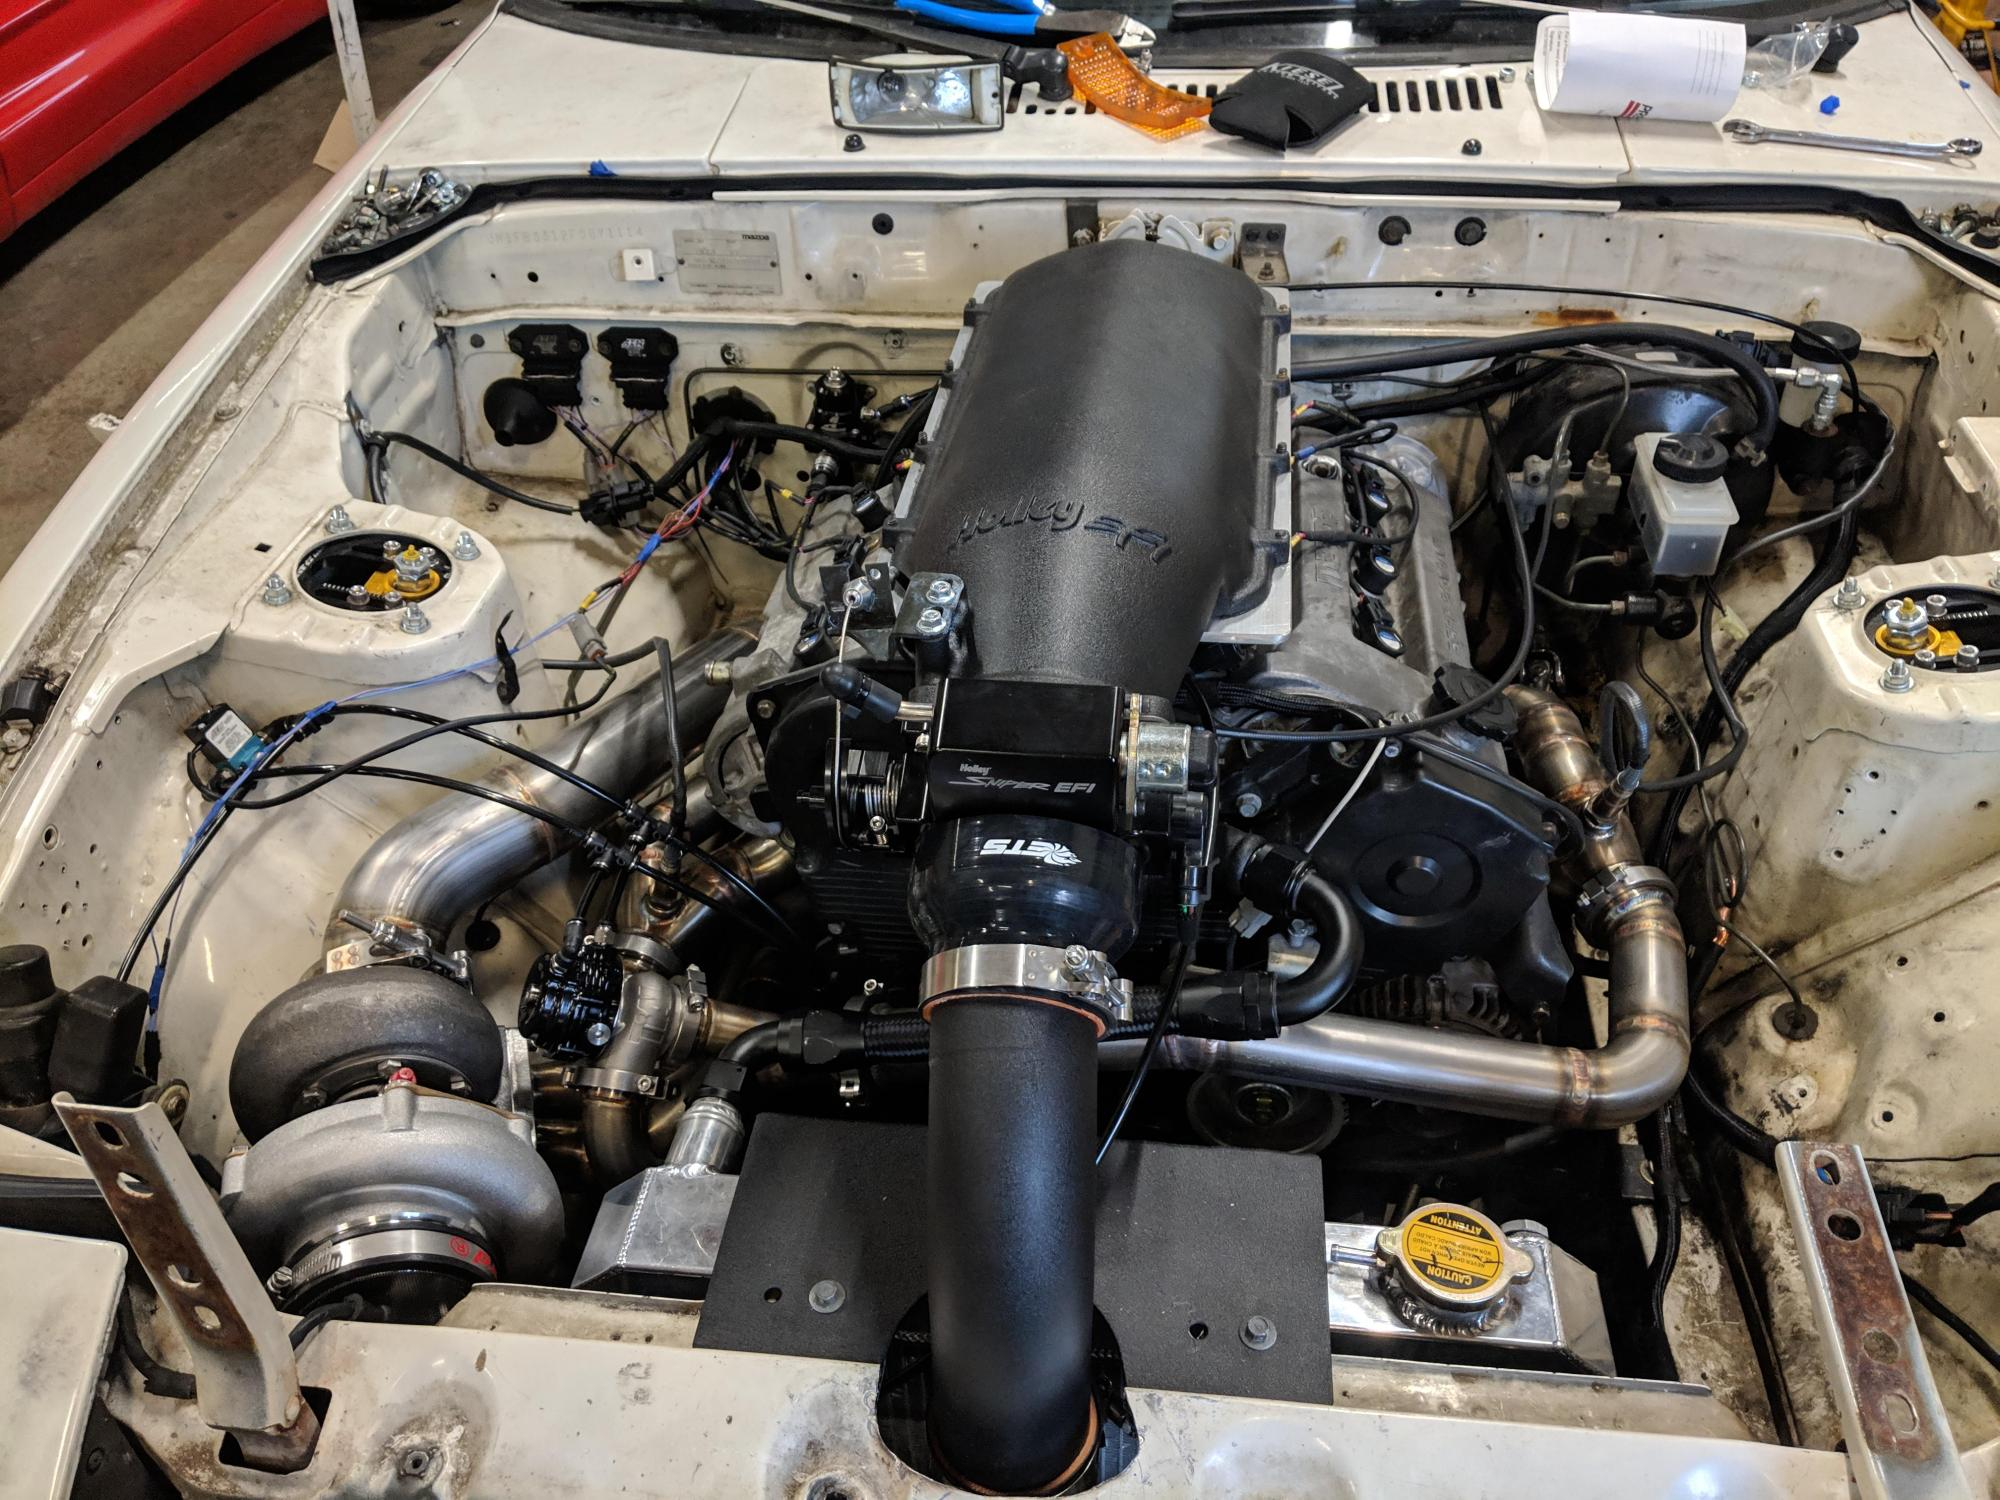 hight resolution of heres a weird combo mazda 2 5l v6 with an ls1 intake manifold and 62mm turbo in a 1985 rx7 using a miata transmission stock rear end motec ecu and aem